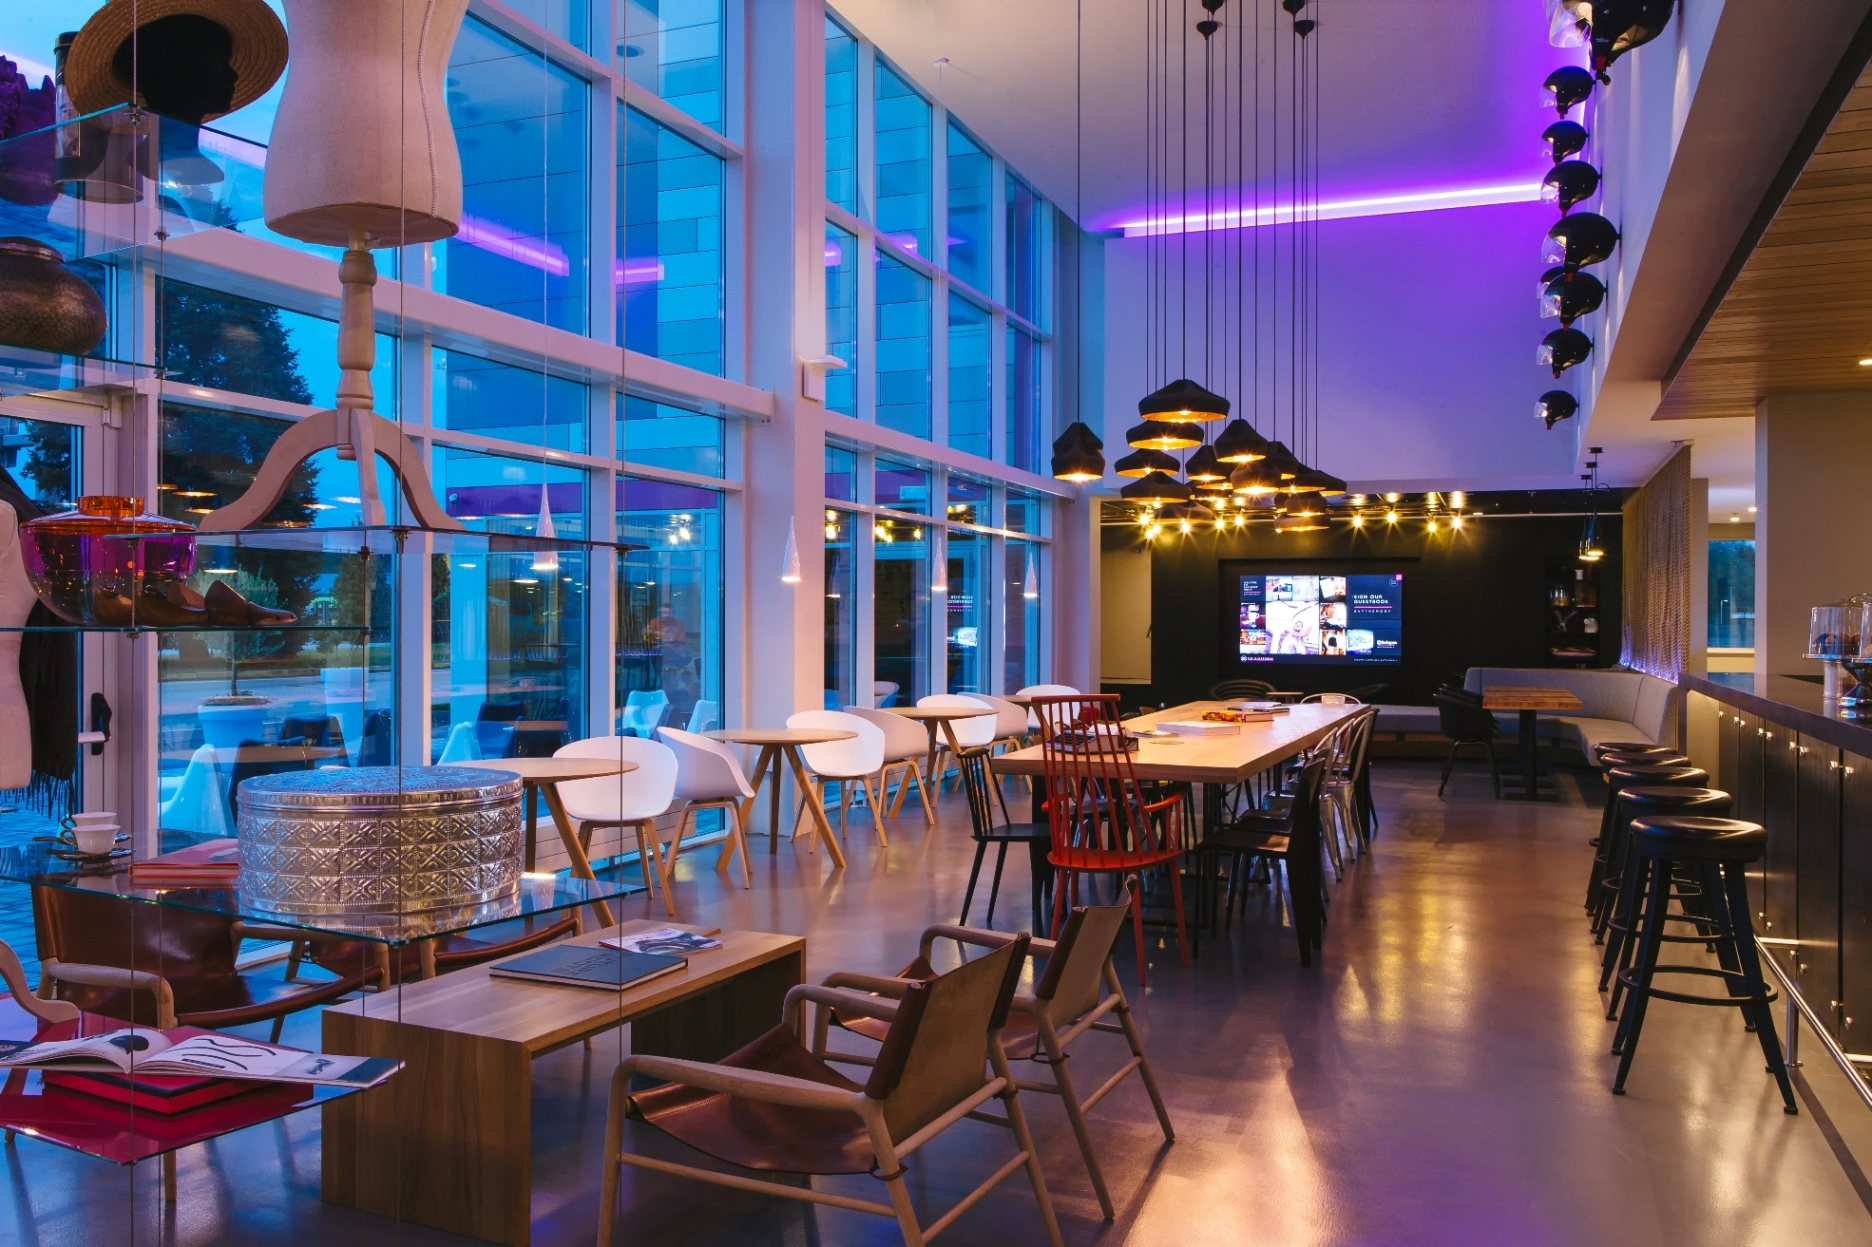 Moxy milan new hotel for budget savvy travellers opens at for Design hotel milan